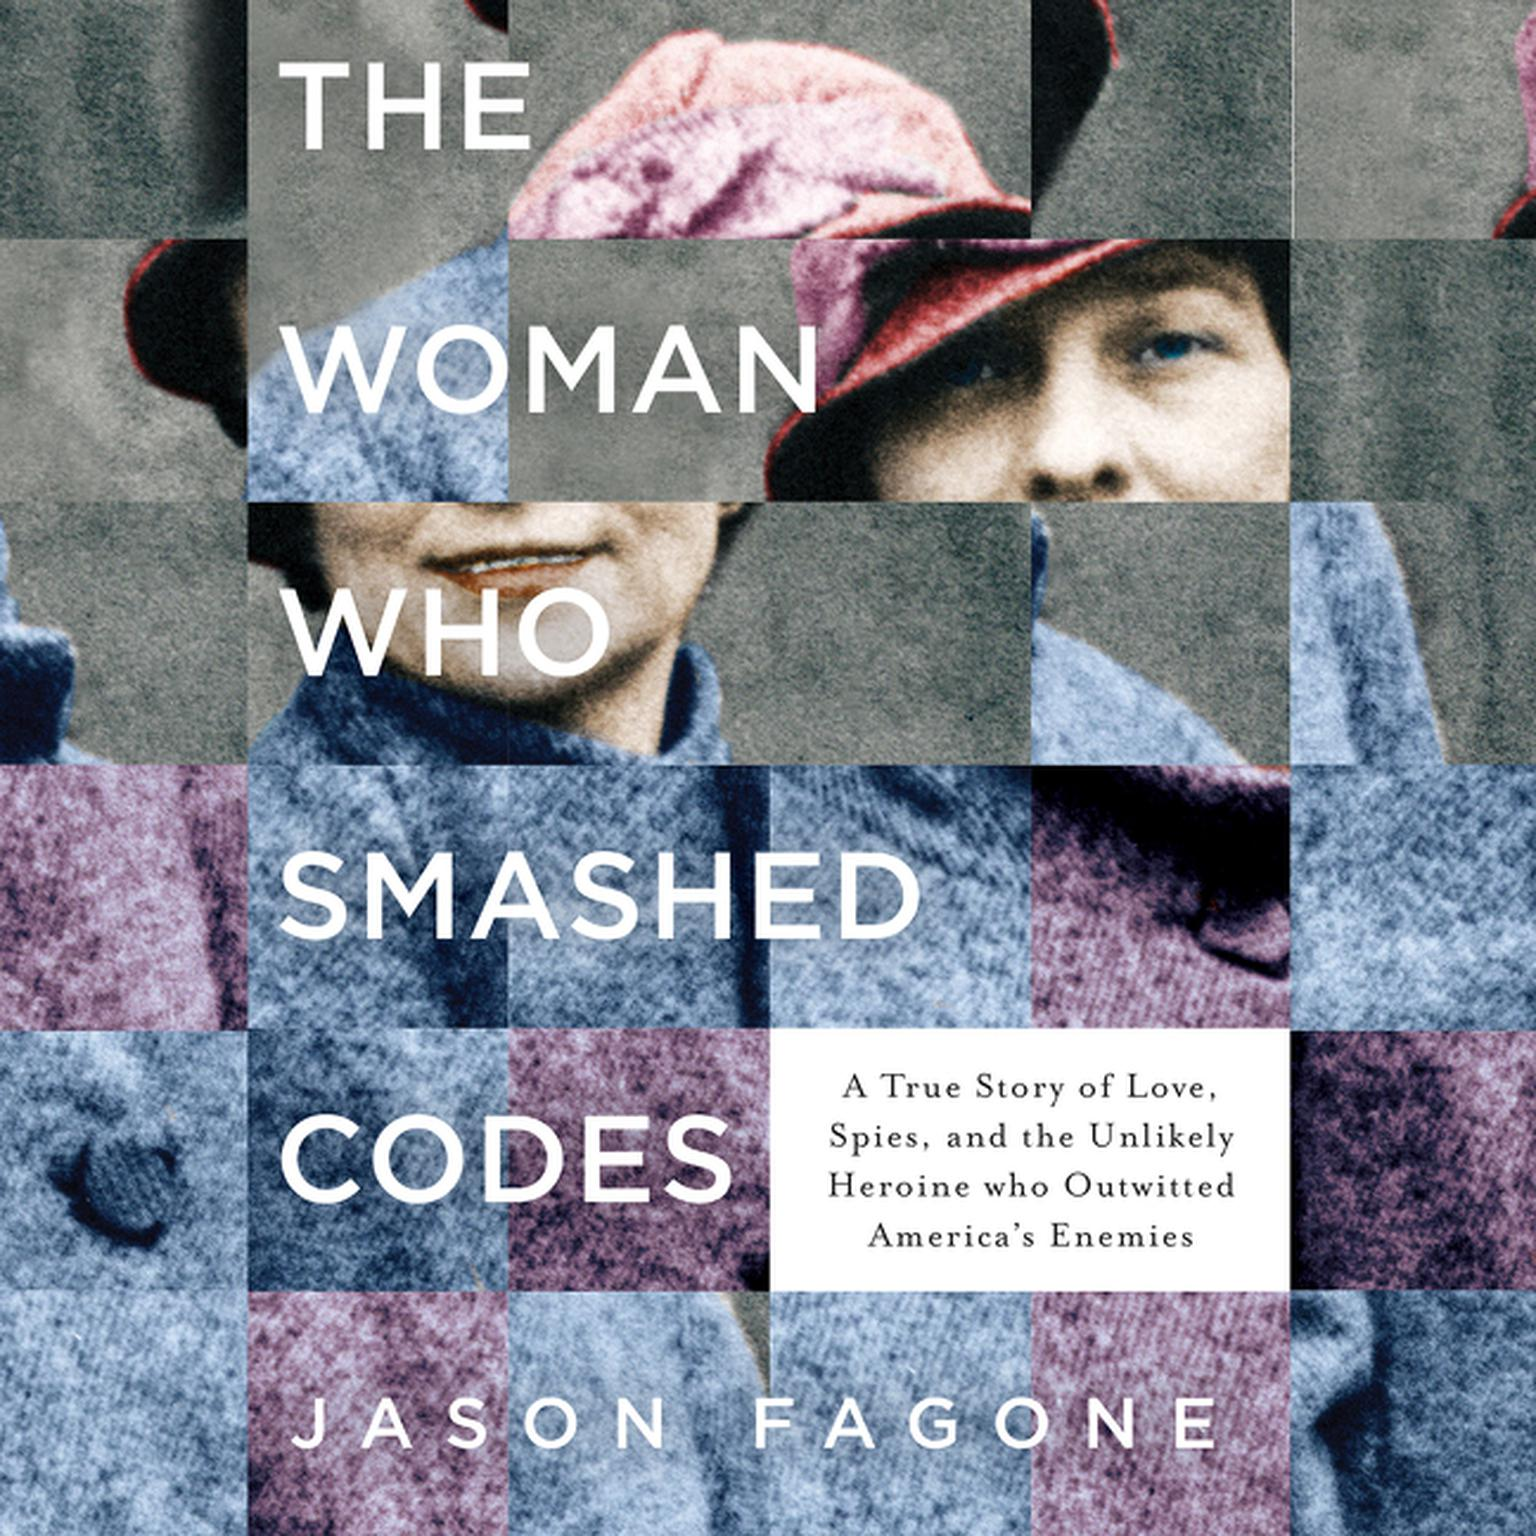 Printable The Woman Who Smashed Codes: A True Story of Love, Spies, and the Unlikely Heroine who Outwitted America's Enemies Audiobook Cover Art